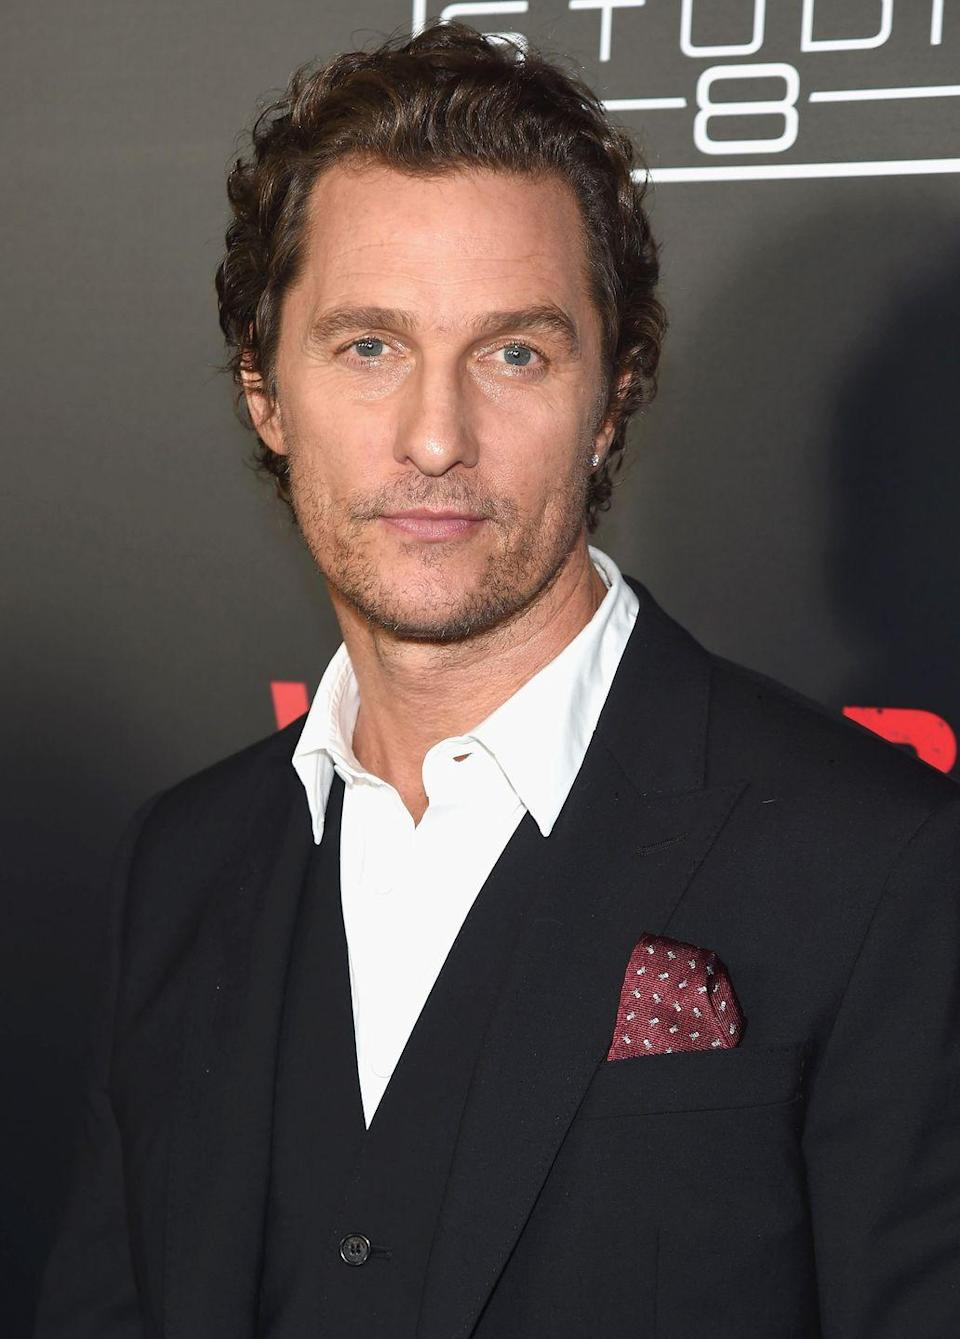 """<p>Matthew McConaughey has been in his fair share of flops (ahem, <em>Failure to Launch</em>), but his 2005 action film <em>Sahara</em> took things to a whole new level when it failed to make up for its <a href=""""https://www.boxofficemojo.com/release/rl2121238017/"""" rel=""""nofollow noopener"""" target=""""_blank"""" data-ylk=""""slk:$160 million budget"""" class=""""link rapid-noclick-resp"""">$160 million budget</a> at the box office.</p>"""